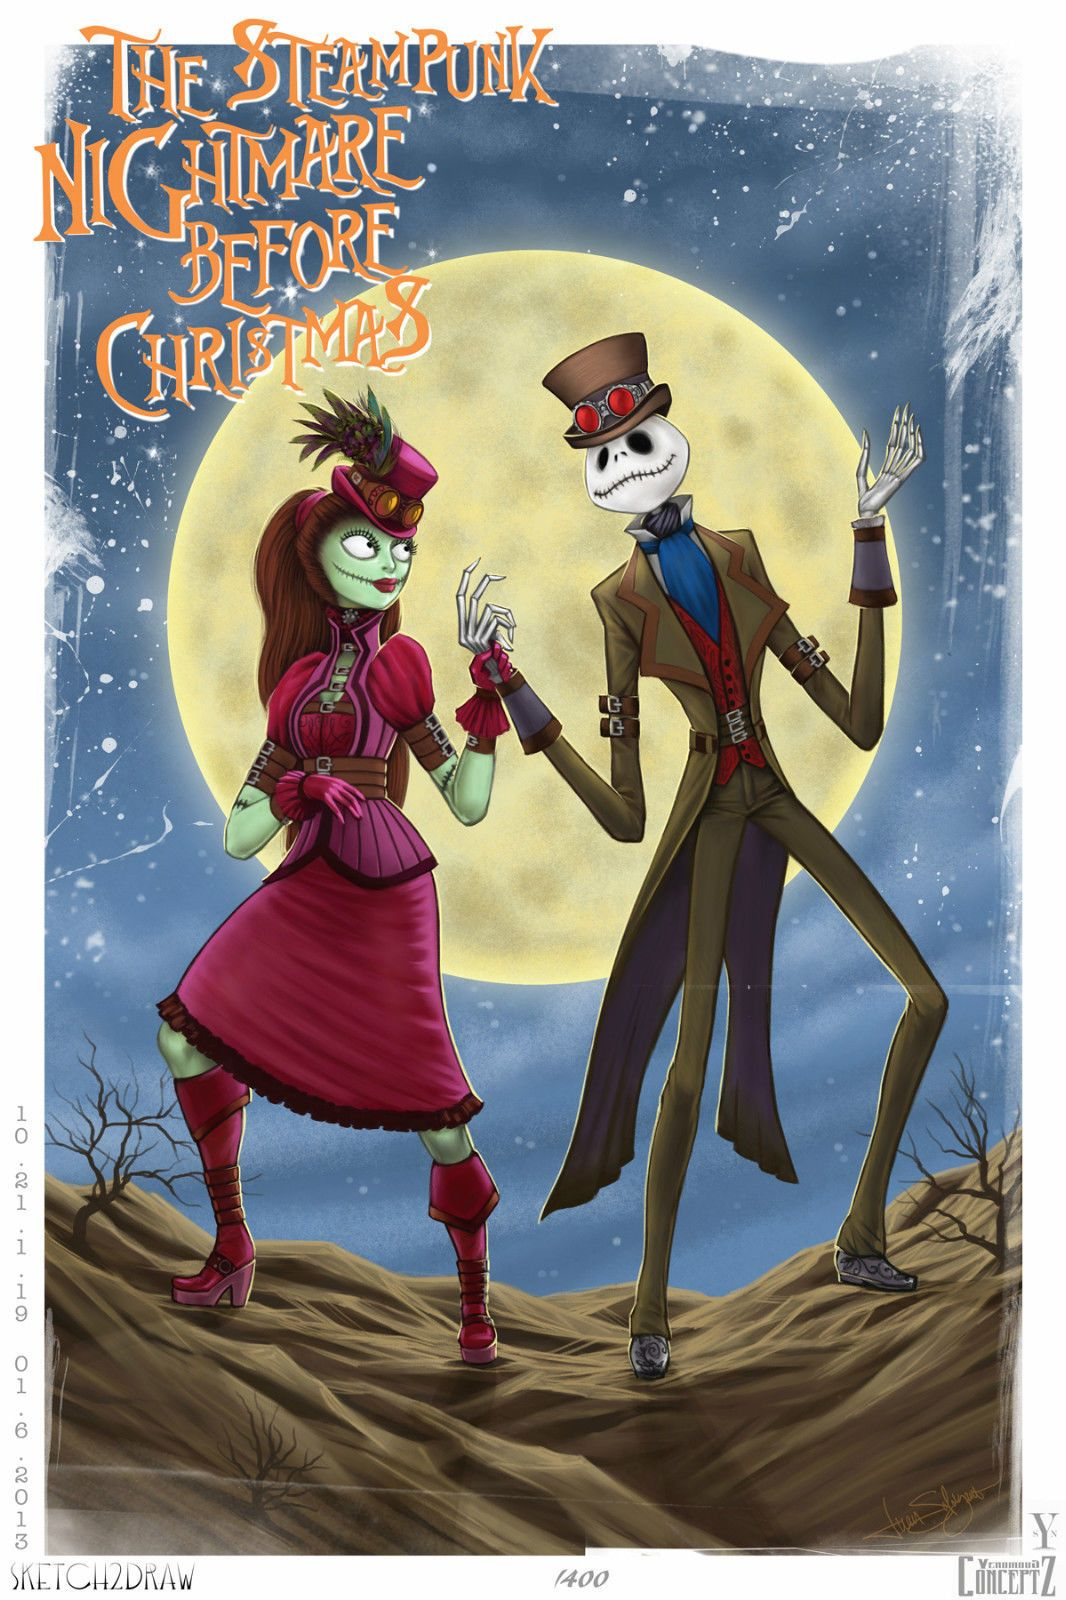 Steampunk Nightmare Before Christmas Limited Edition 400 Steampunk Christmas Sally Nightmare Before Christmas Nightmare Before Christmas